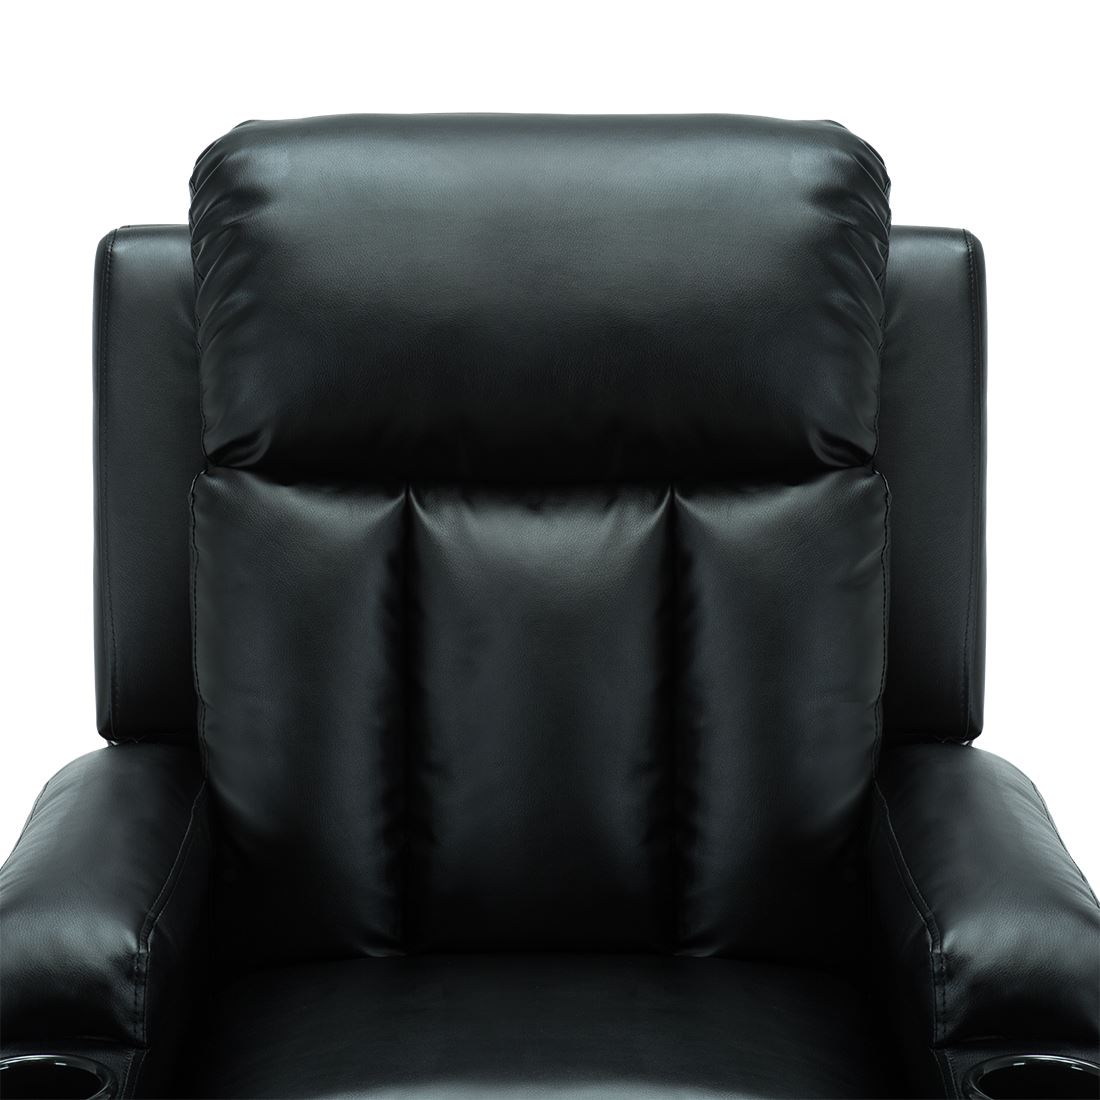 STUDIO-LEATHER-RECLINER-w-DRINK-HOLDERS-ARMCHAIR-SOFA-CHAIR-CINEMA-GAMING thumbnail 9